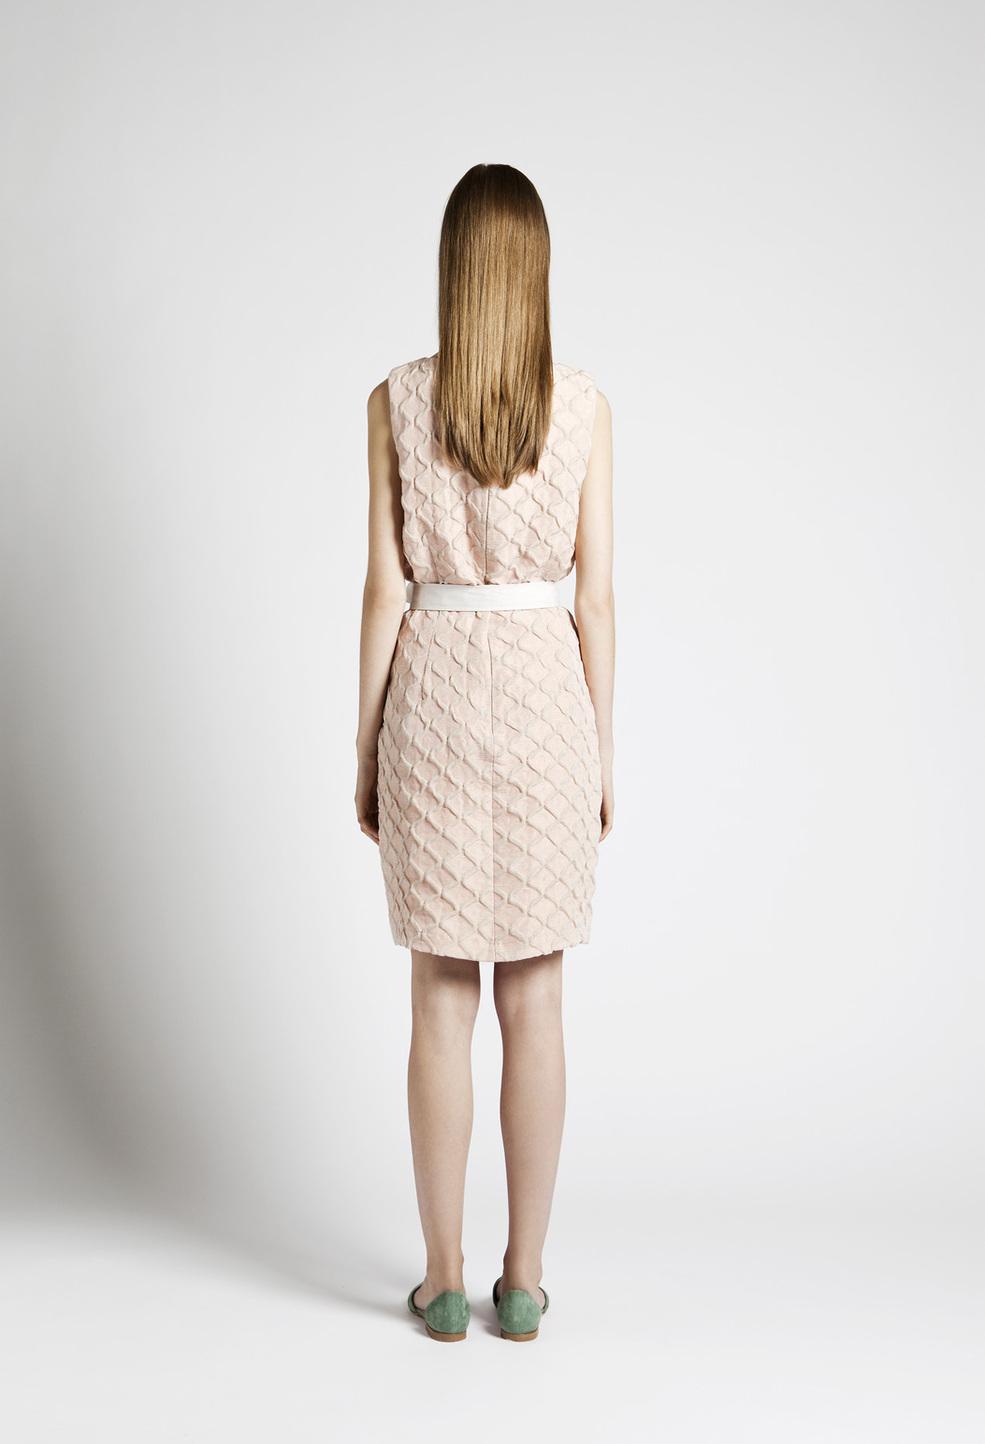 Seasonal_lookbook_ss14_027_back_dami_dress